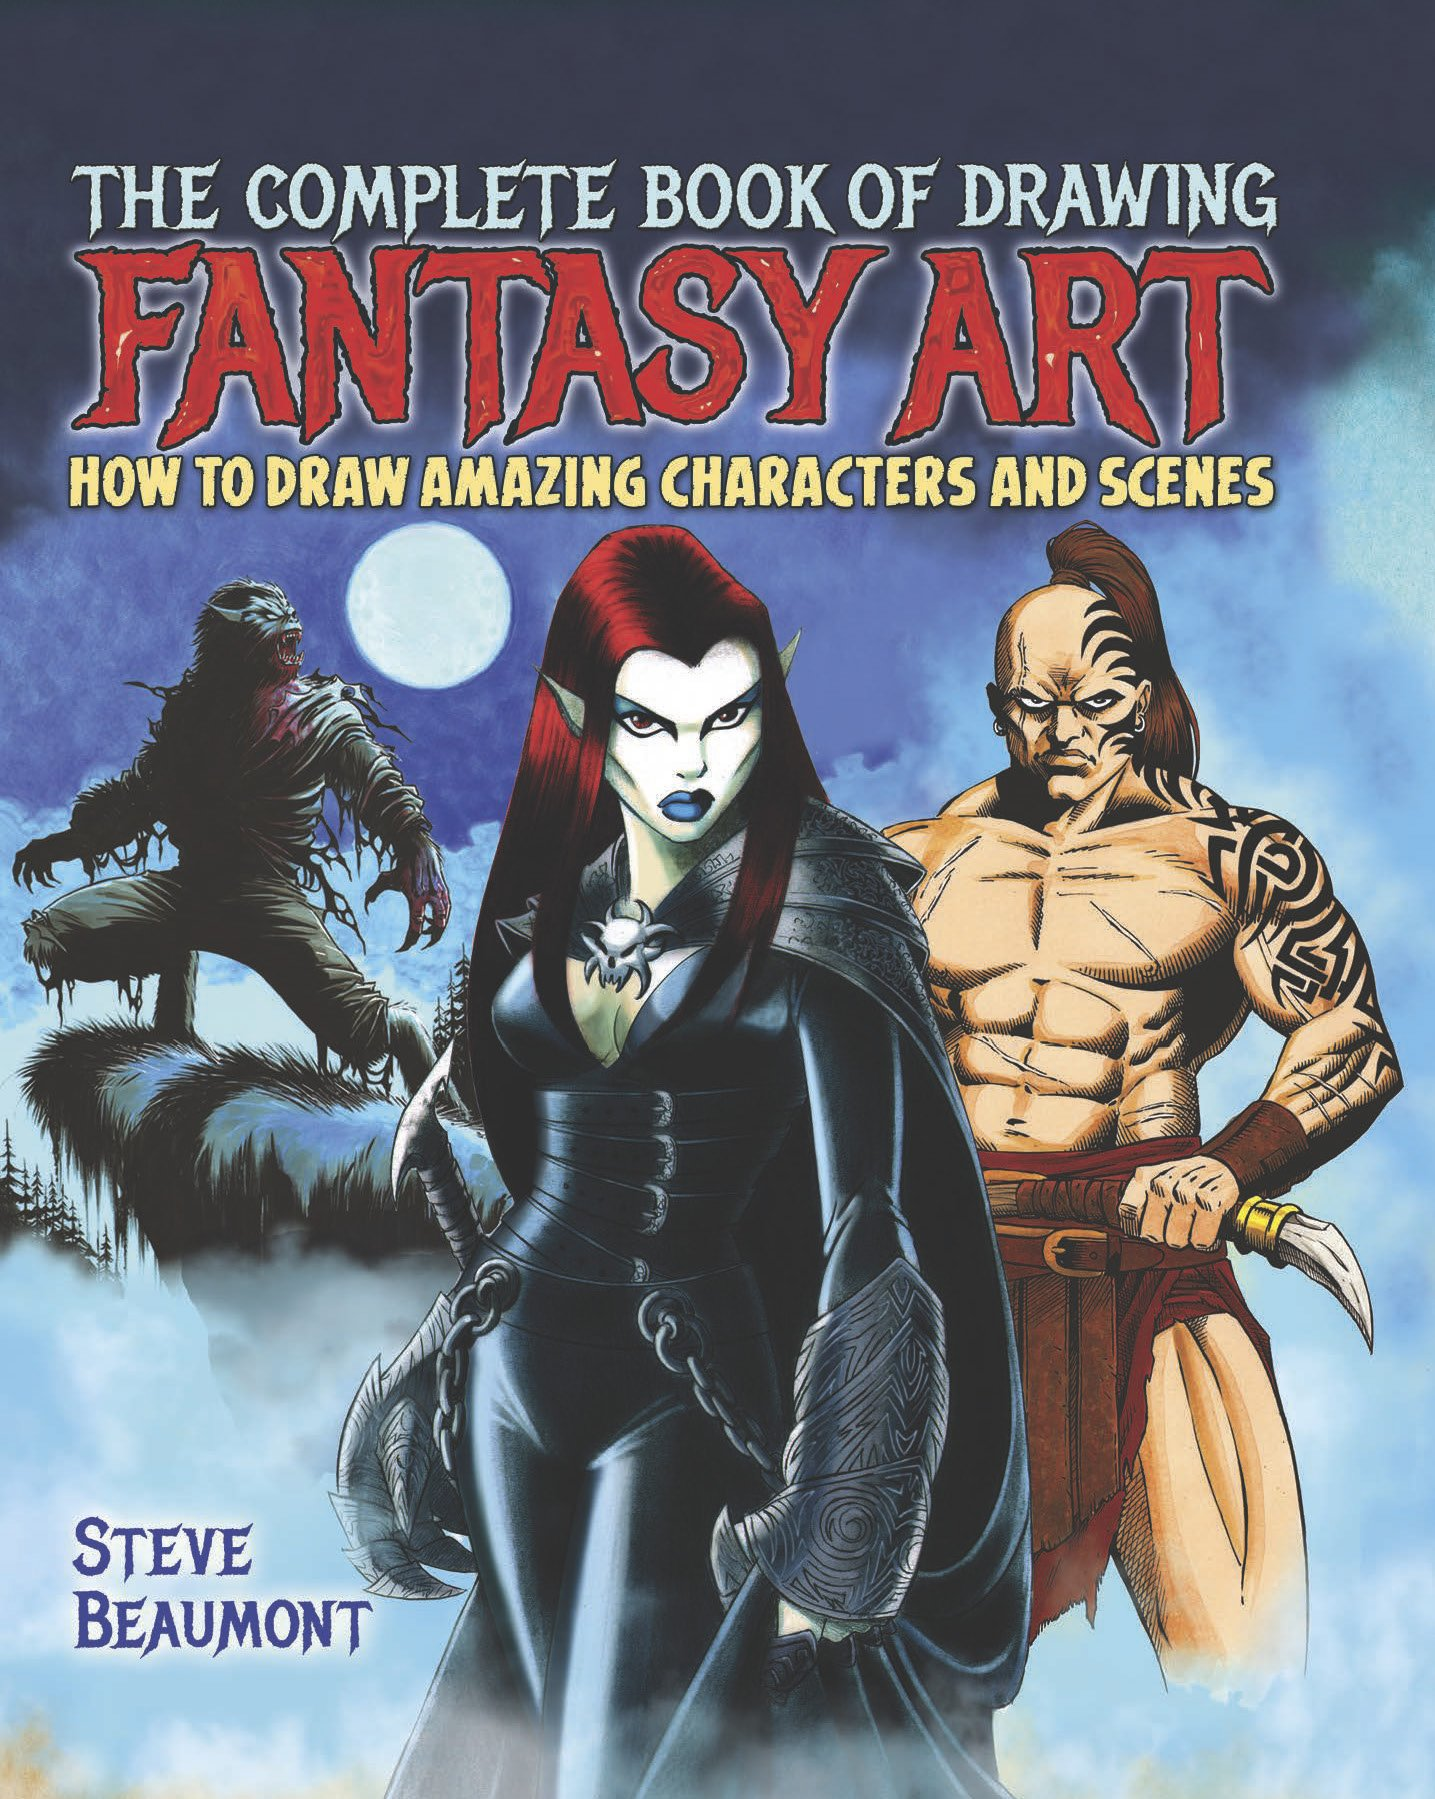 Download The Complete Book of Fantasy Art Text fb2 book